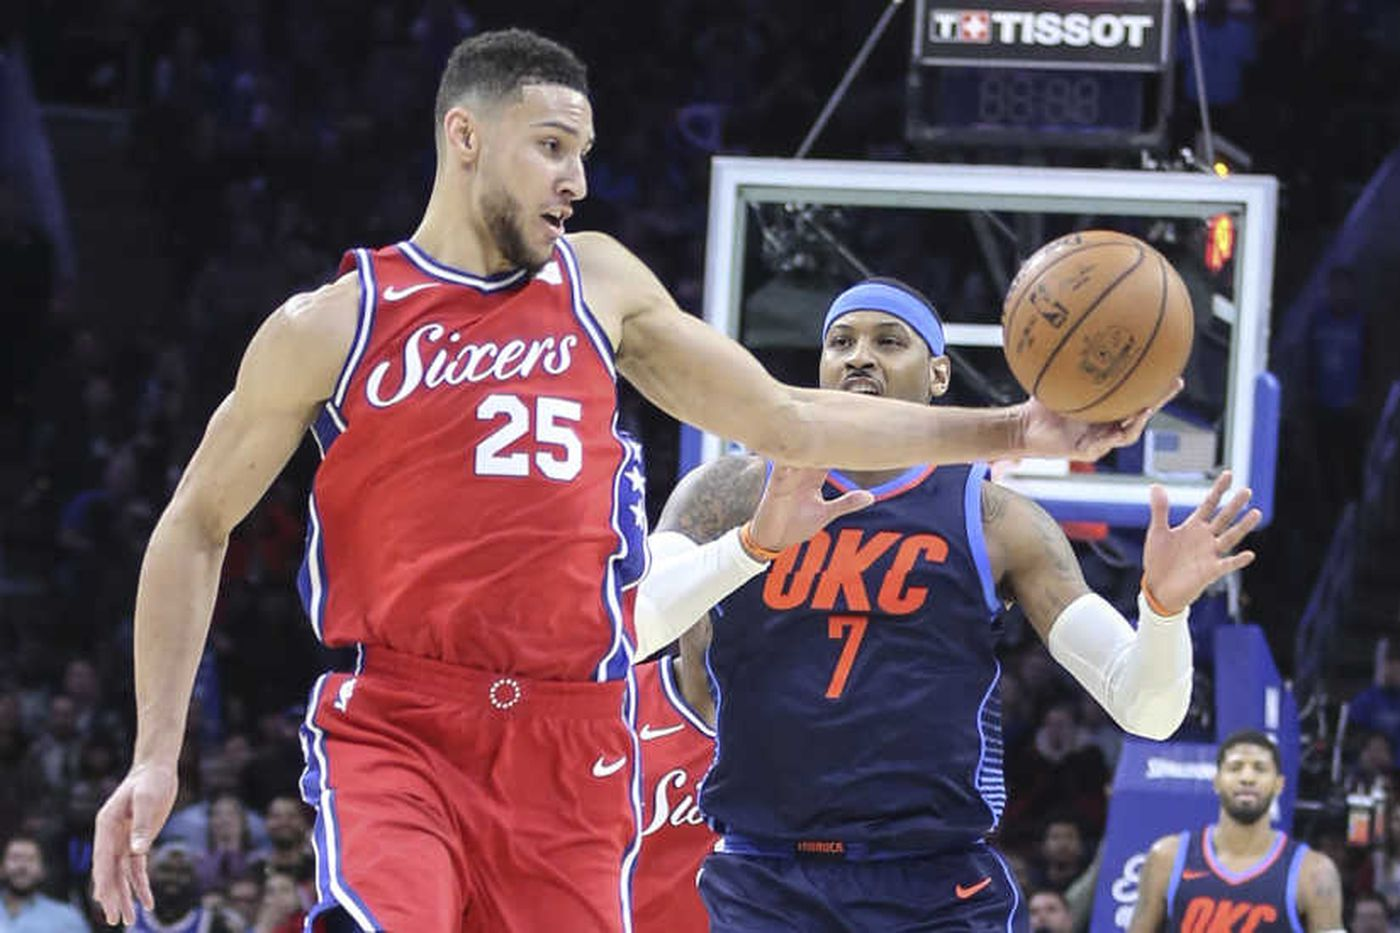 Sixers-Thunder: Russell Westbrook battles Joel Embiid and Ben Simmons, and other quick thoughts from a 119-117 triple-overtime loss